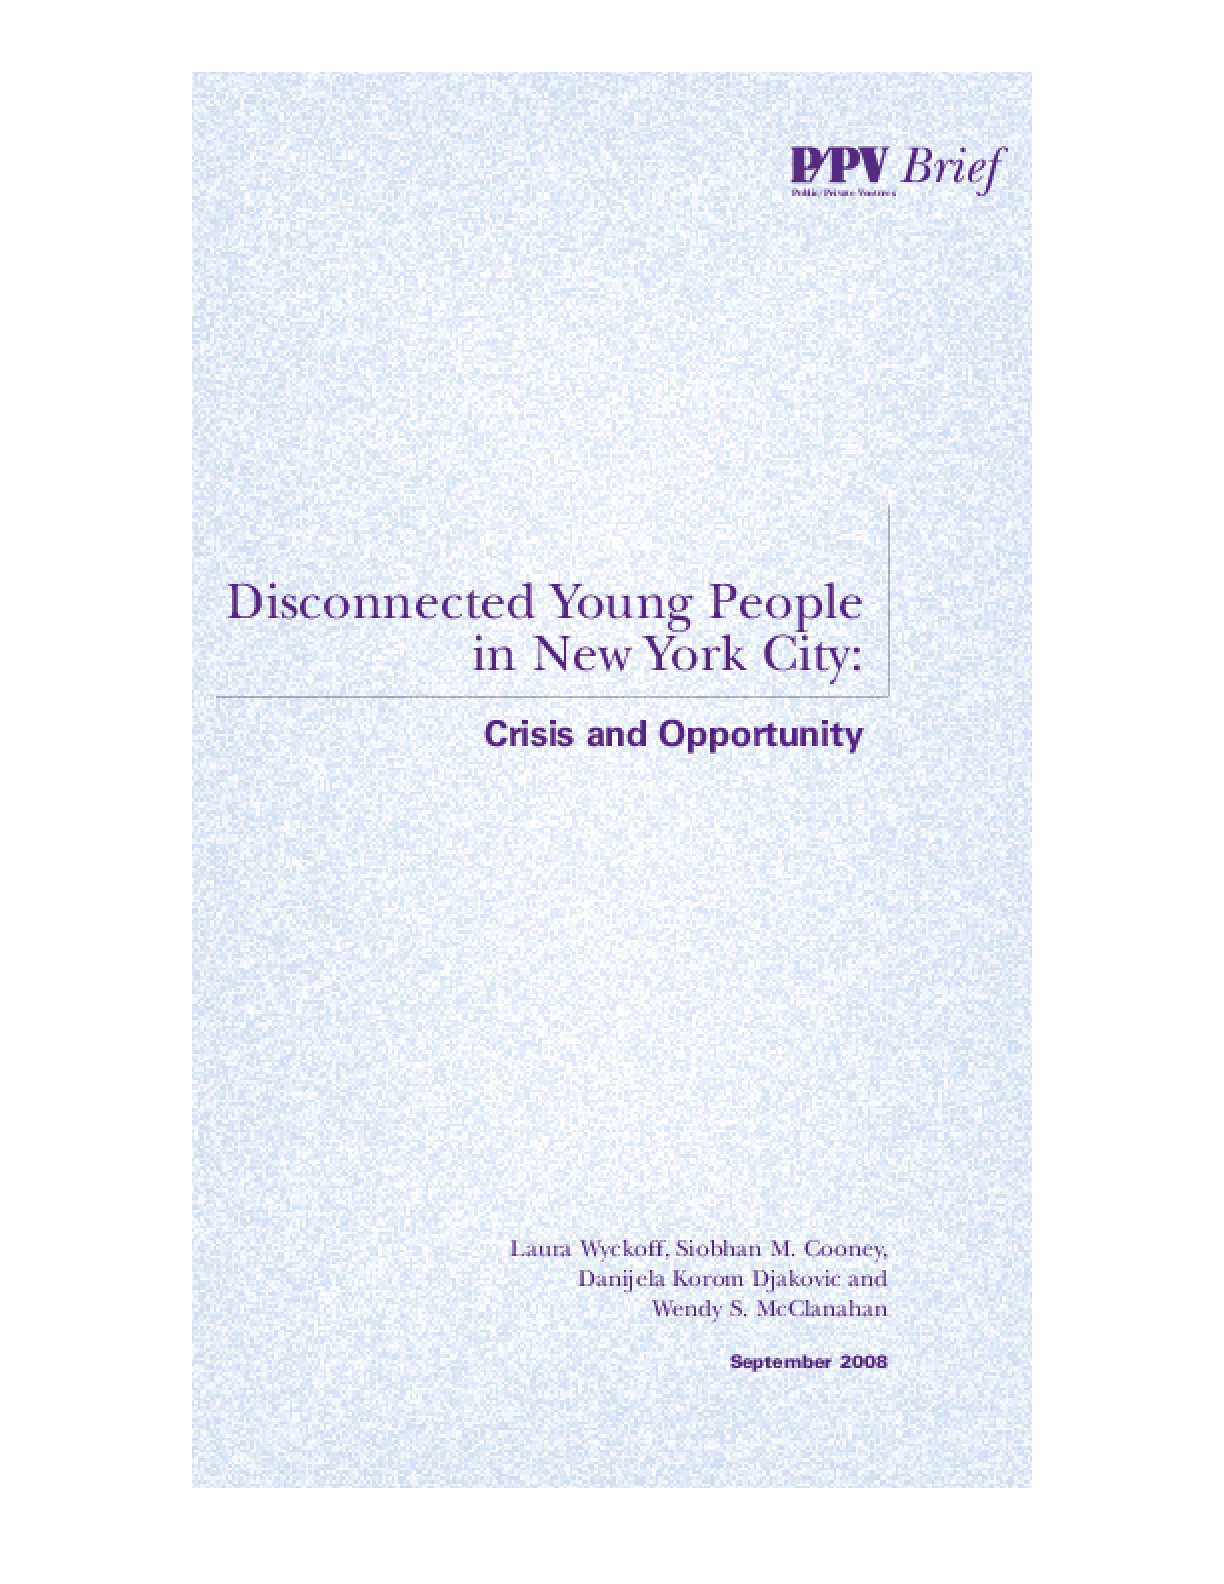 Disconnected Young People in New York City: Crisis and Opportunity